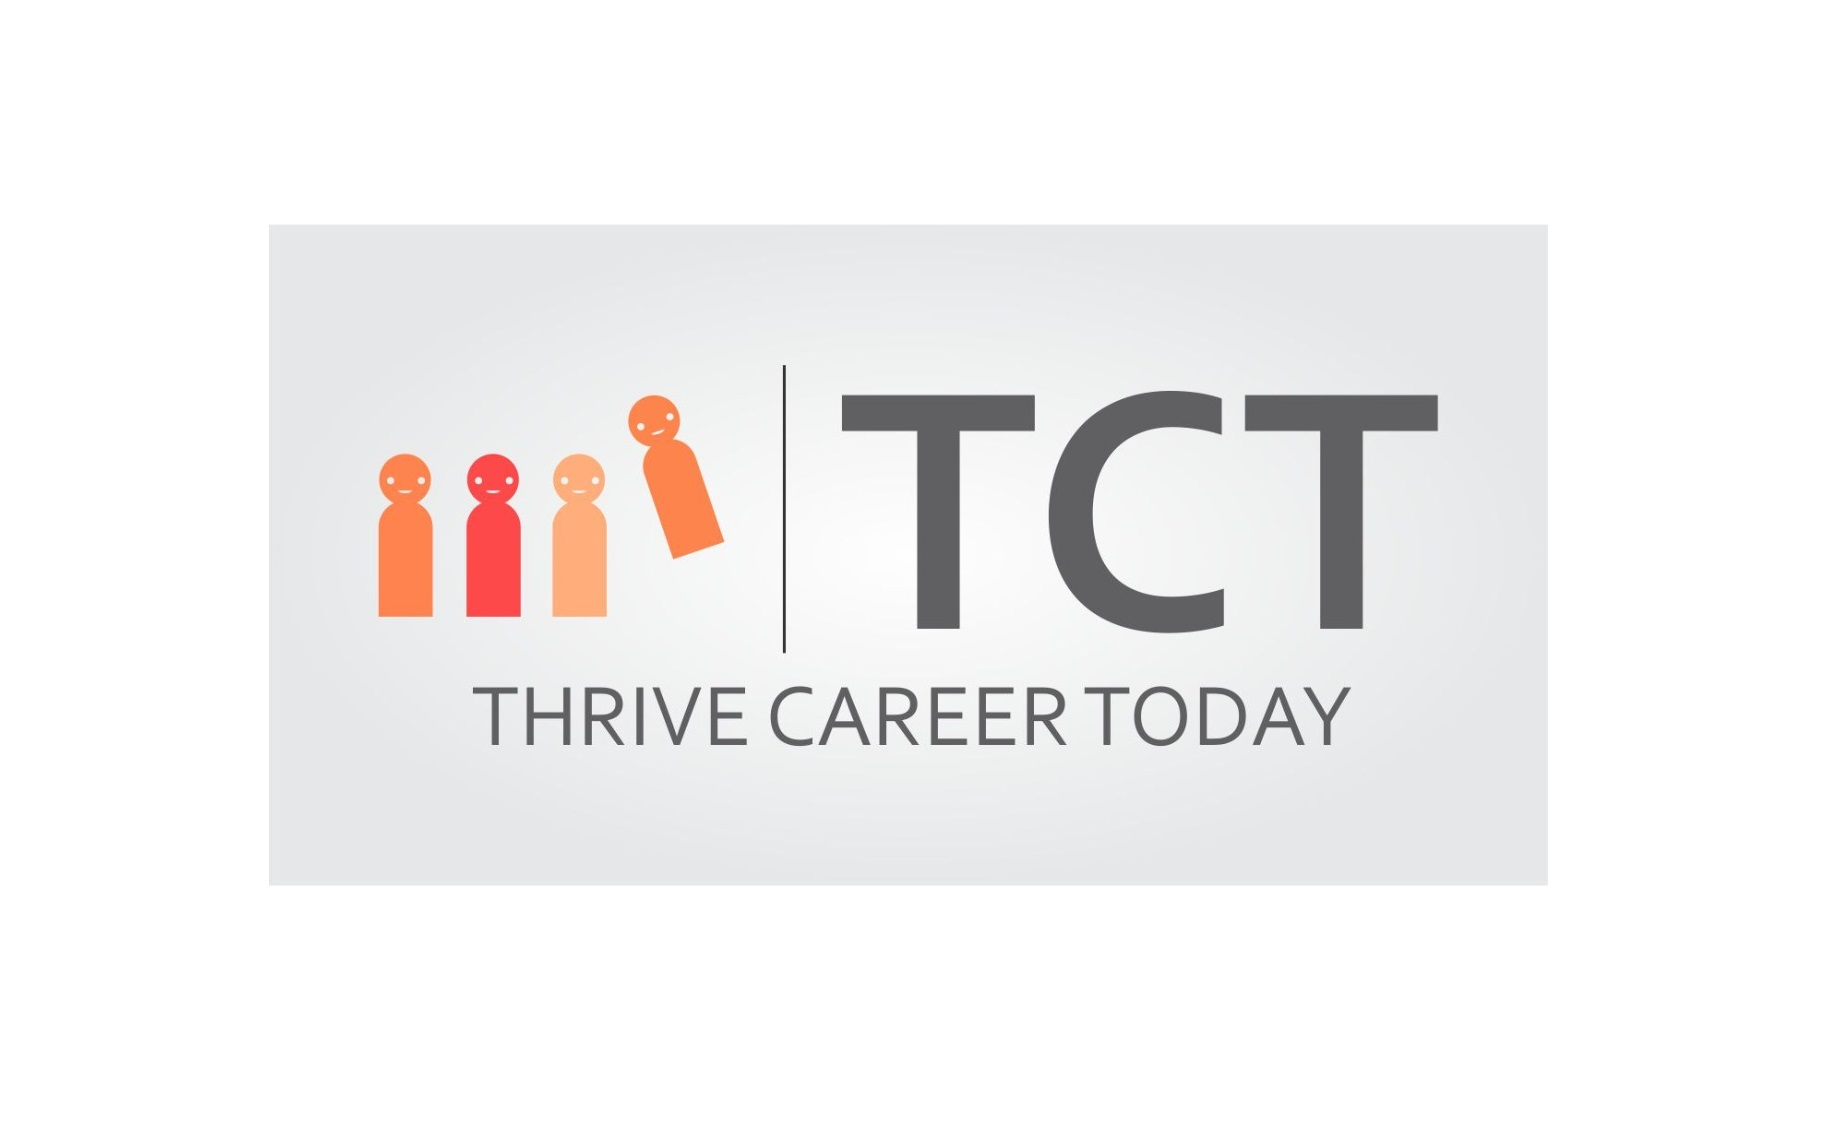 Thrive Career Today